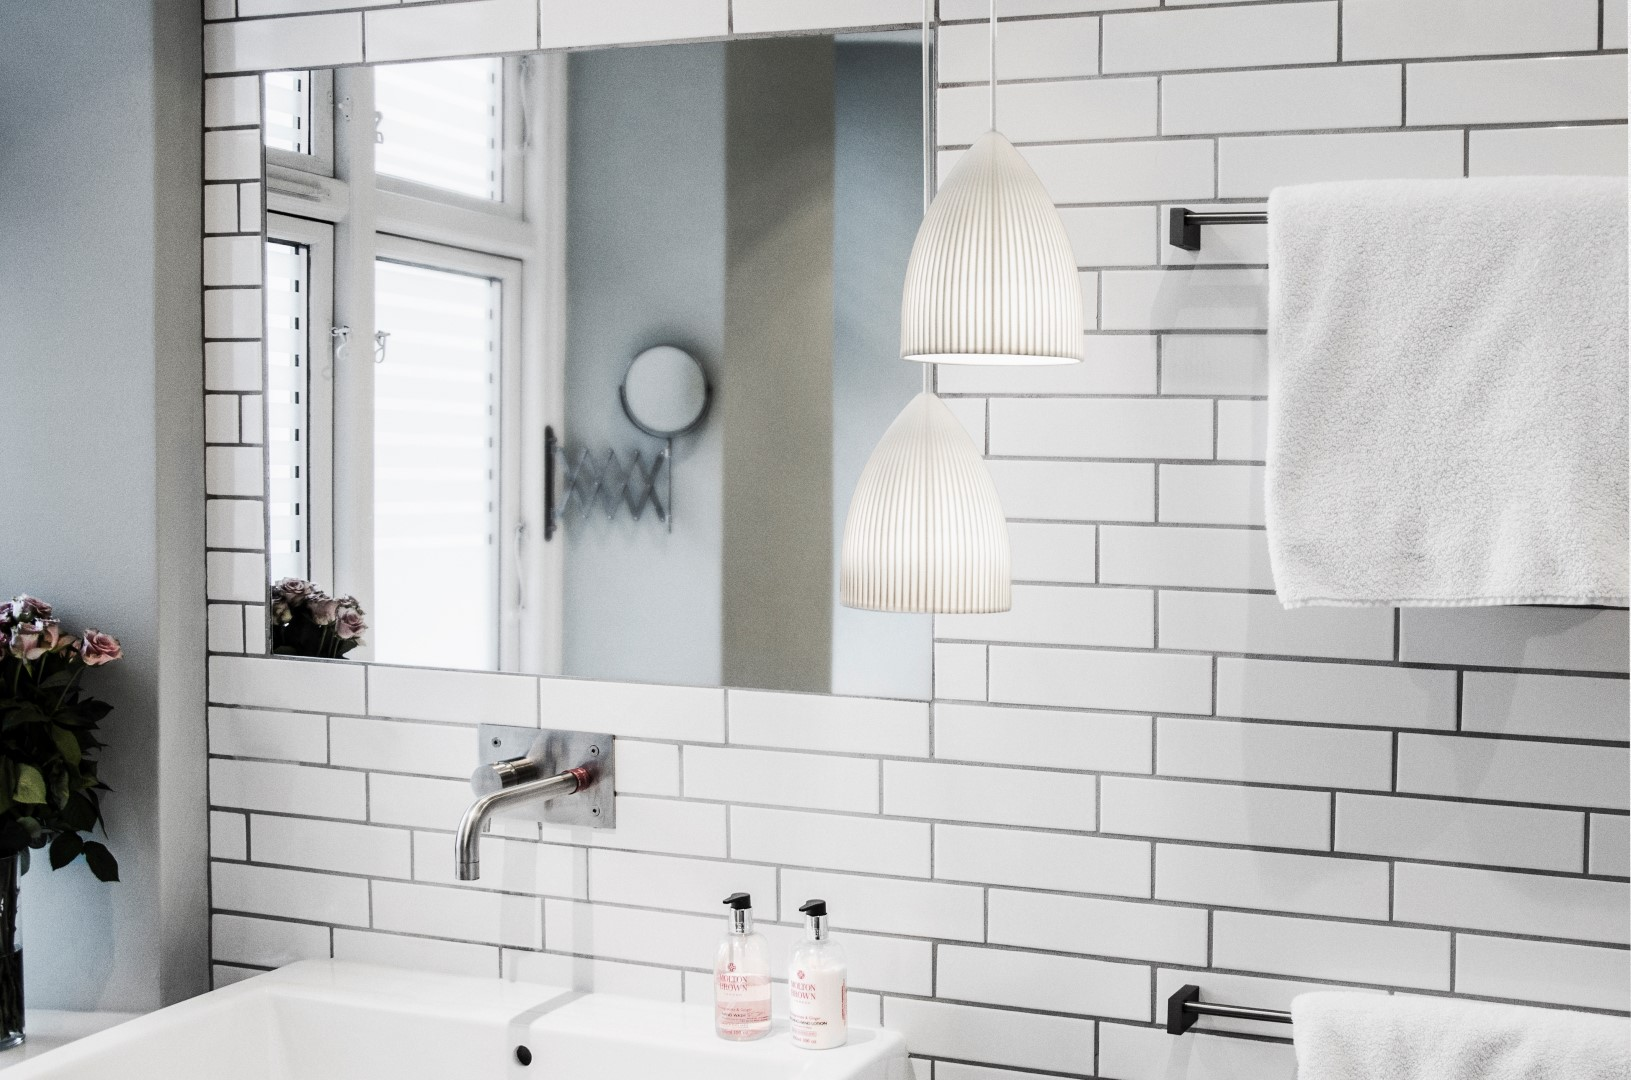 Swell Top 6 Bathroom Tile Trends For 2017 The Luxpad Download Free Architecture Designs Scobabritishbridgeorg